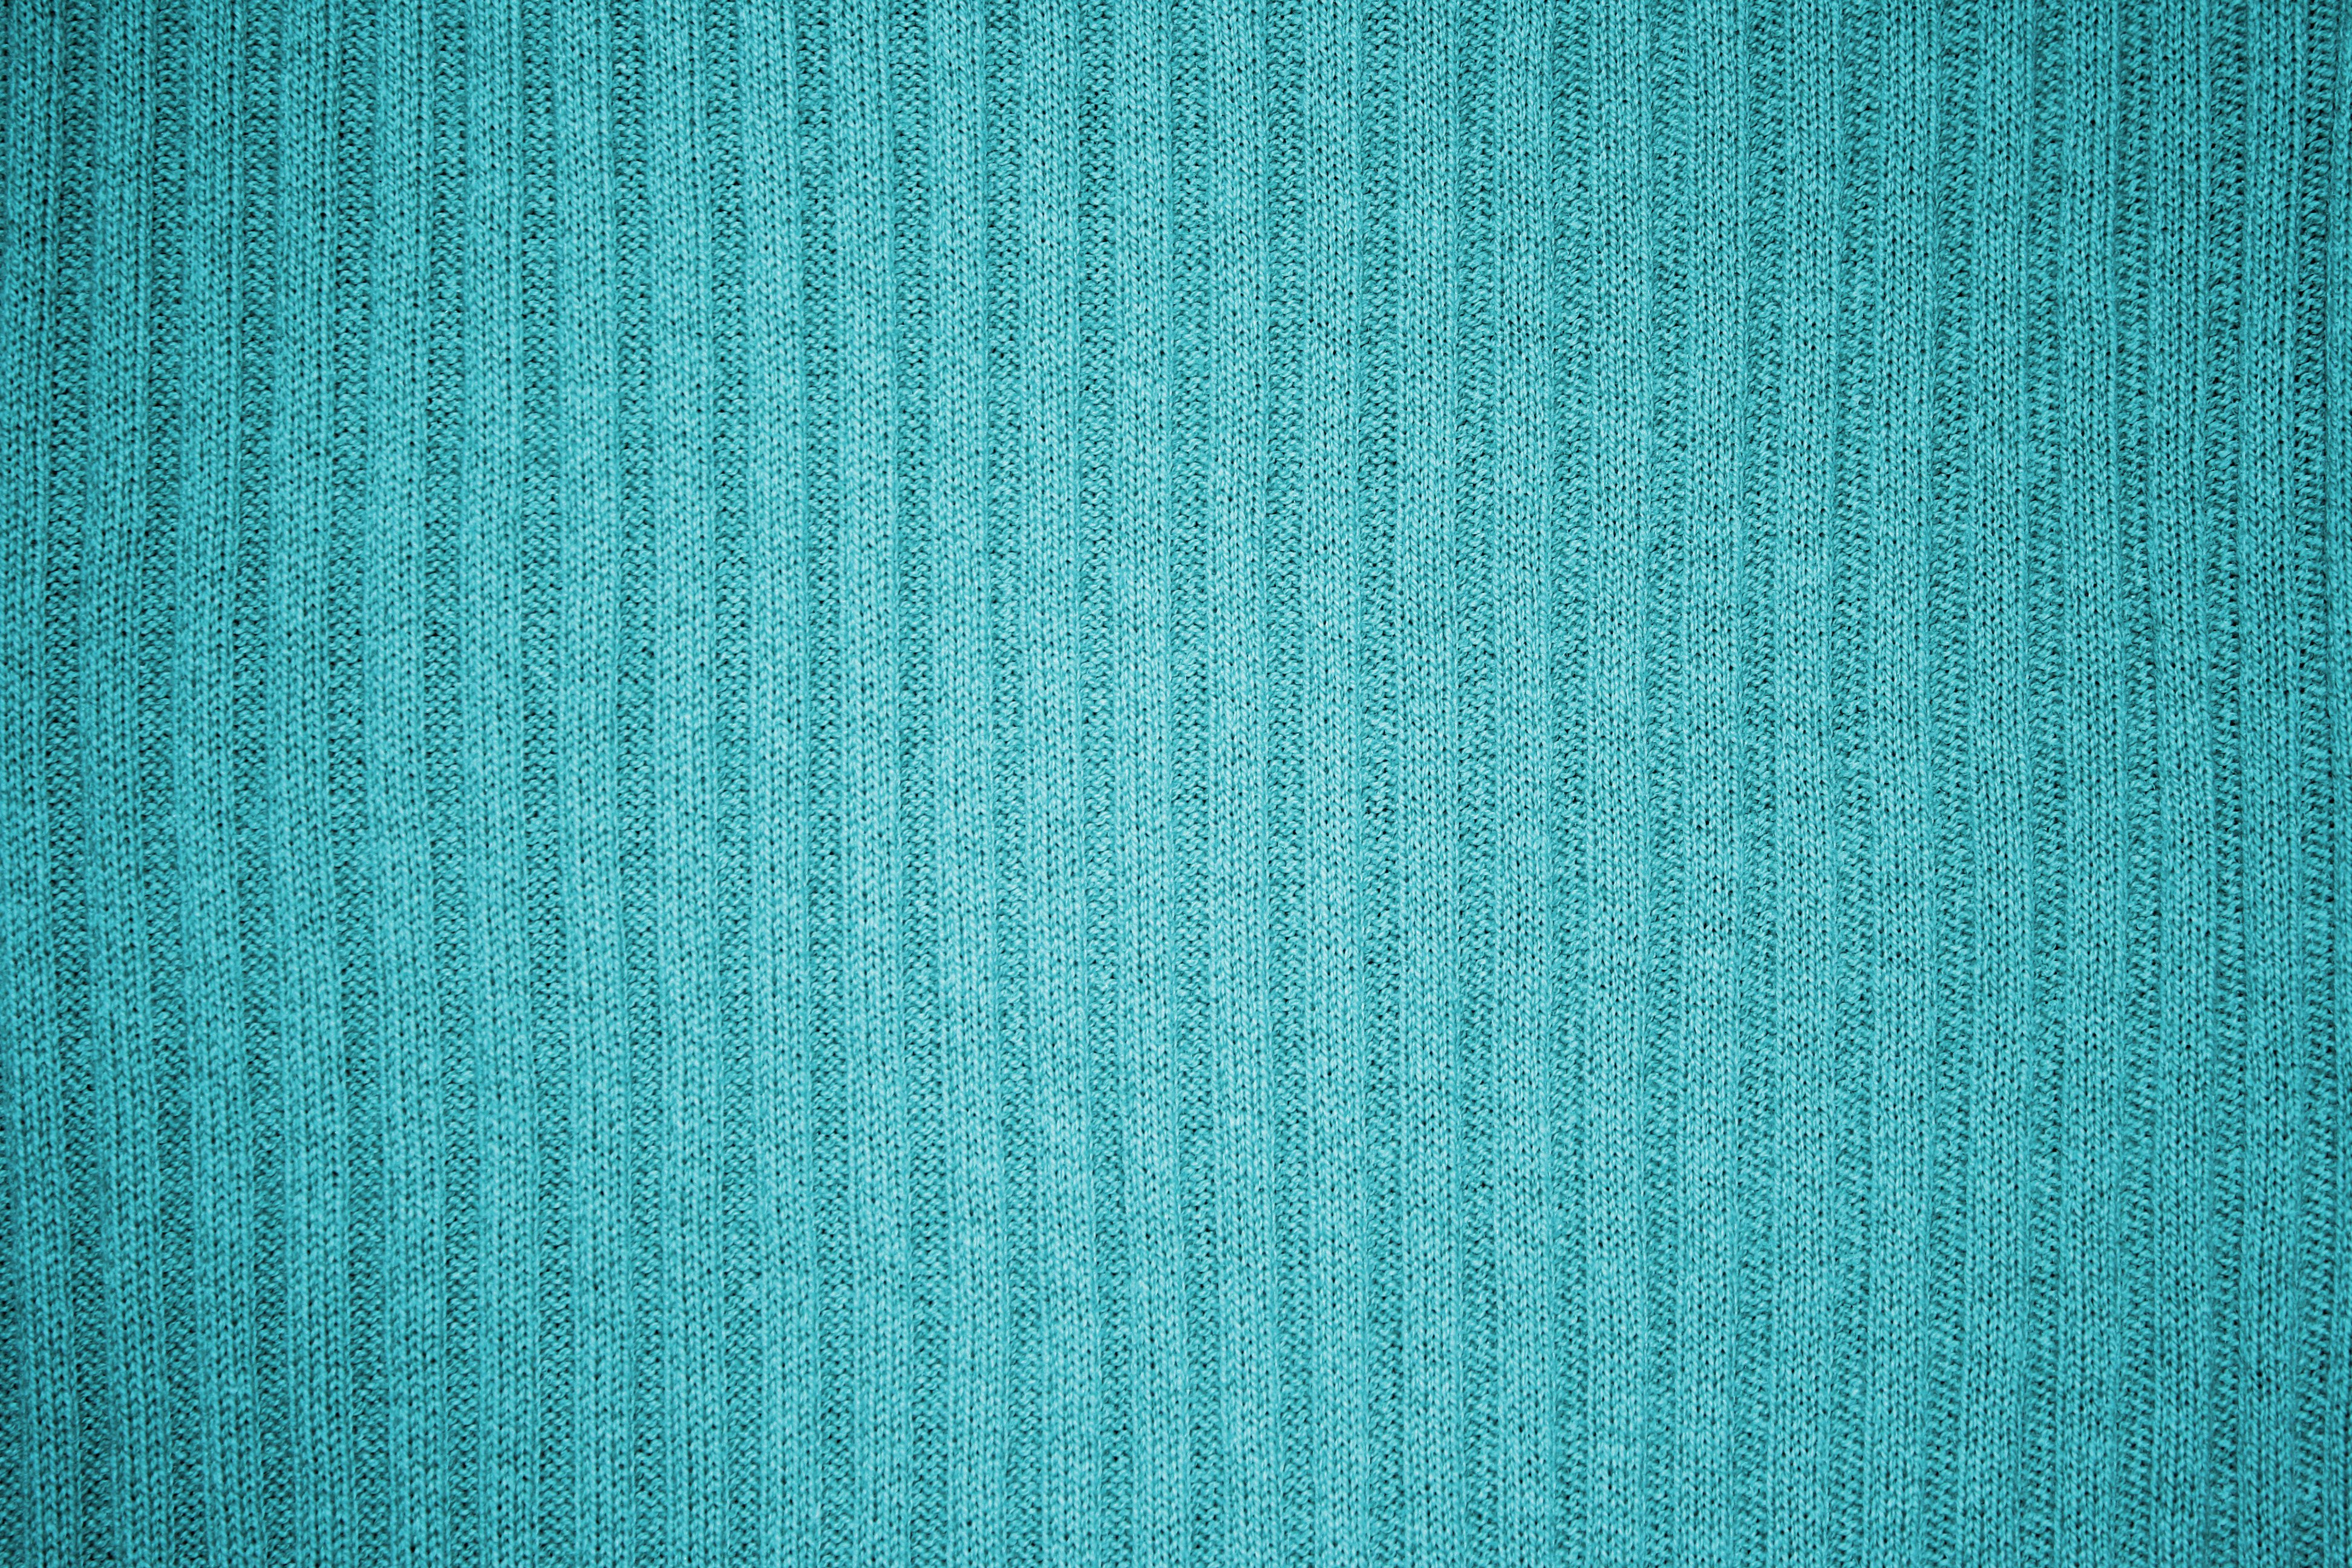 Teal Or Turquoise Ribbed Knit Fabric Texture Picture